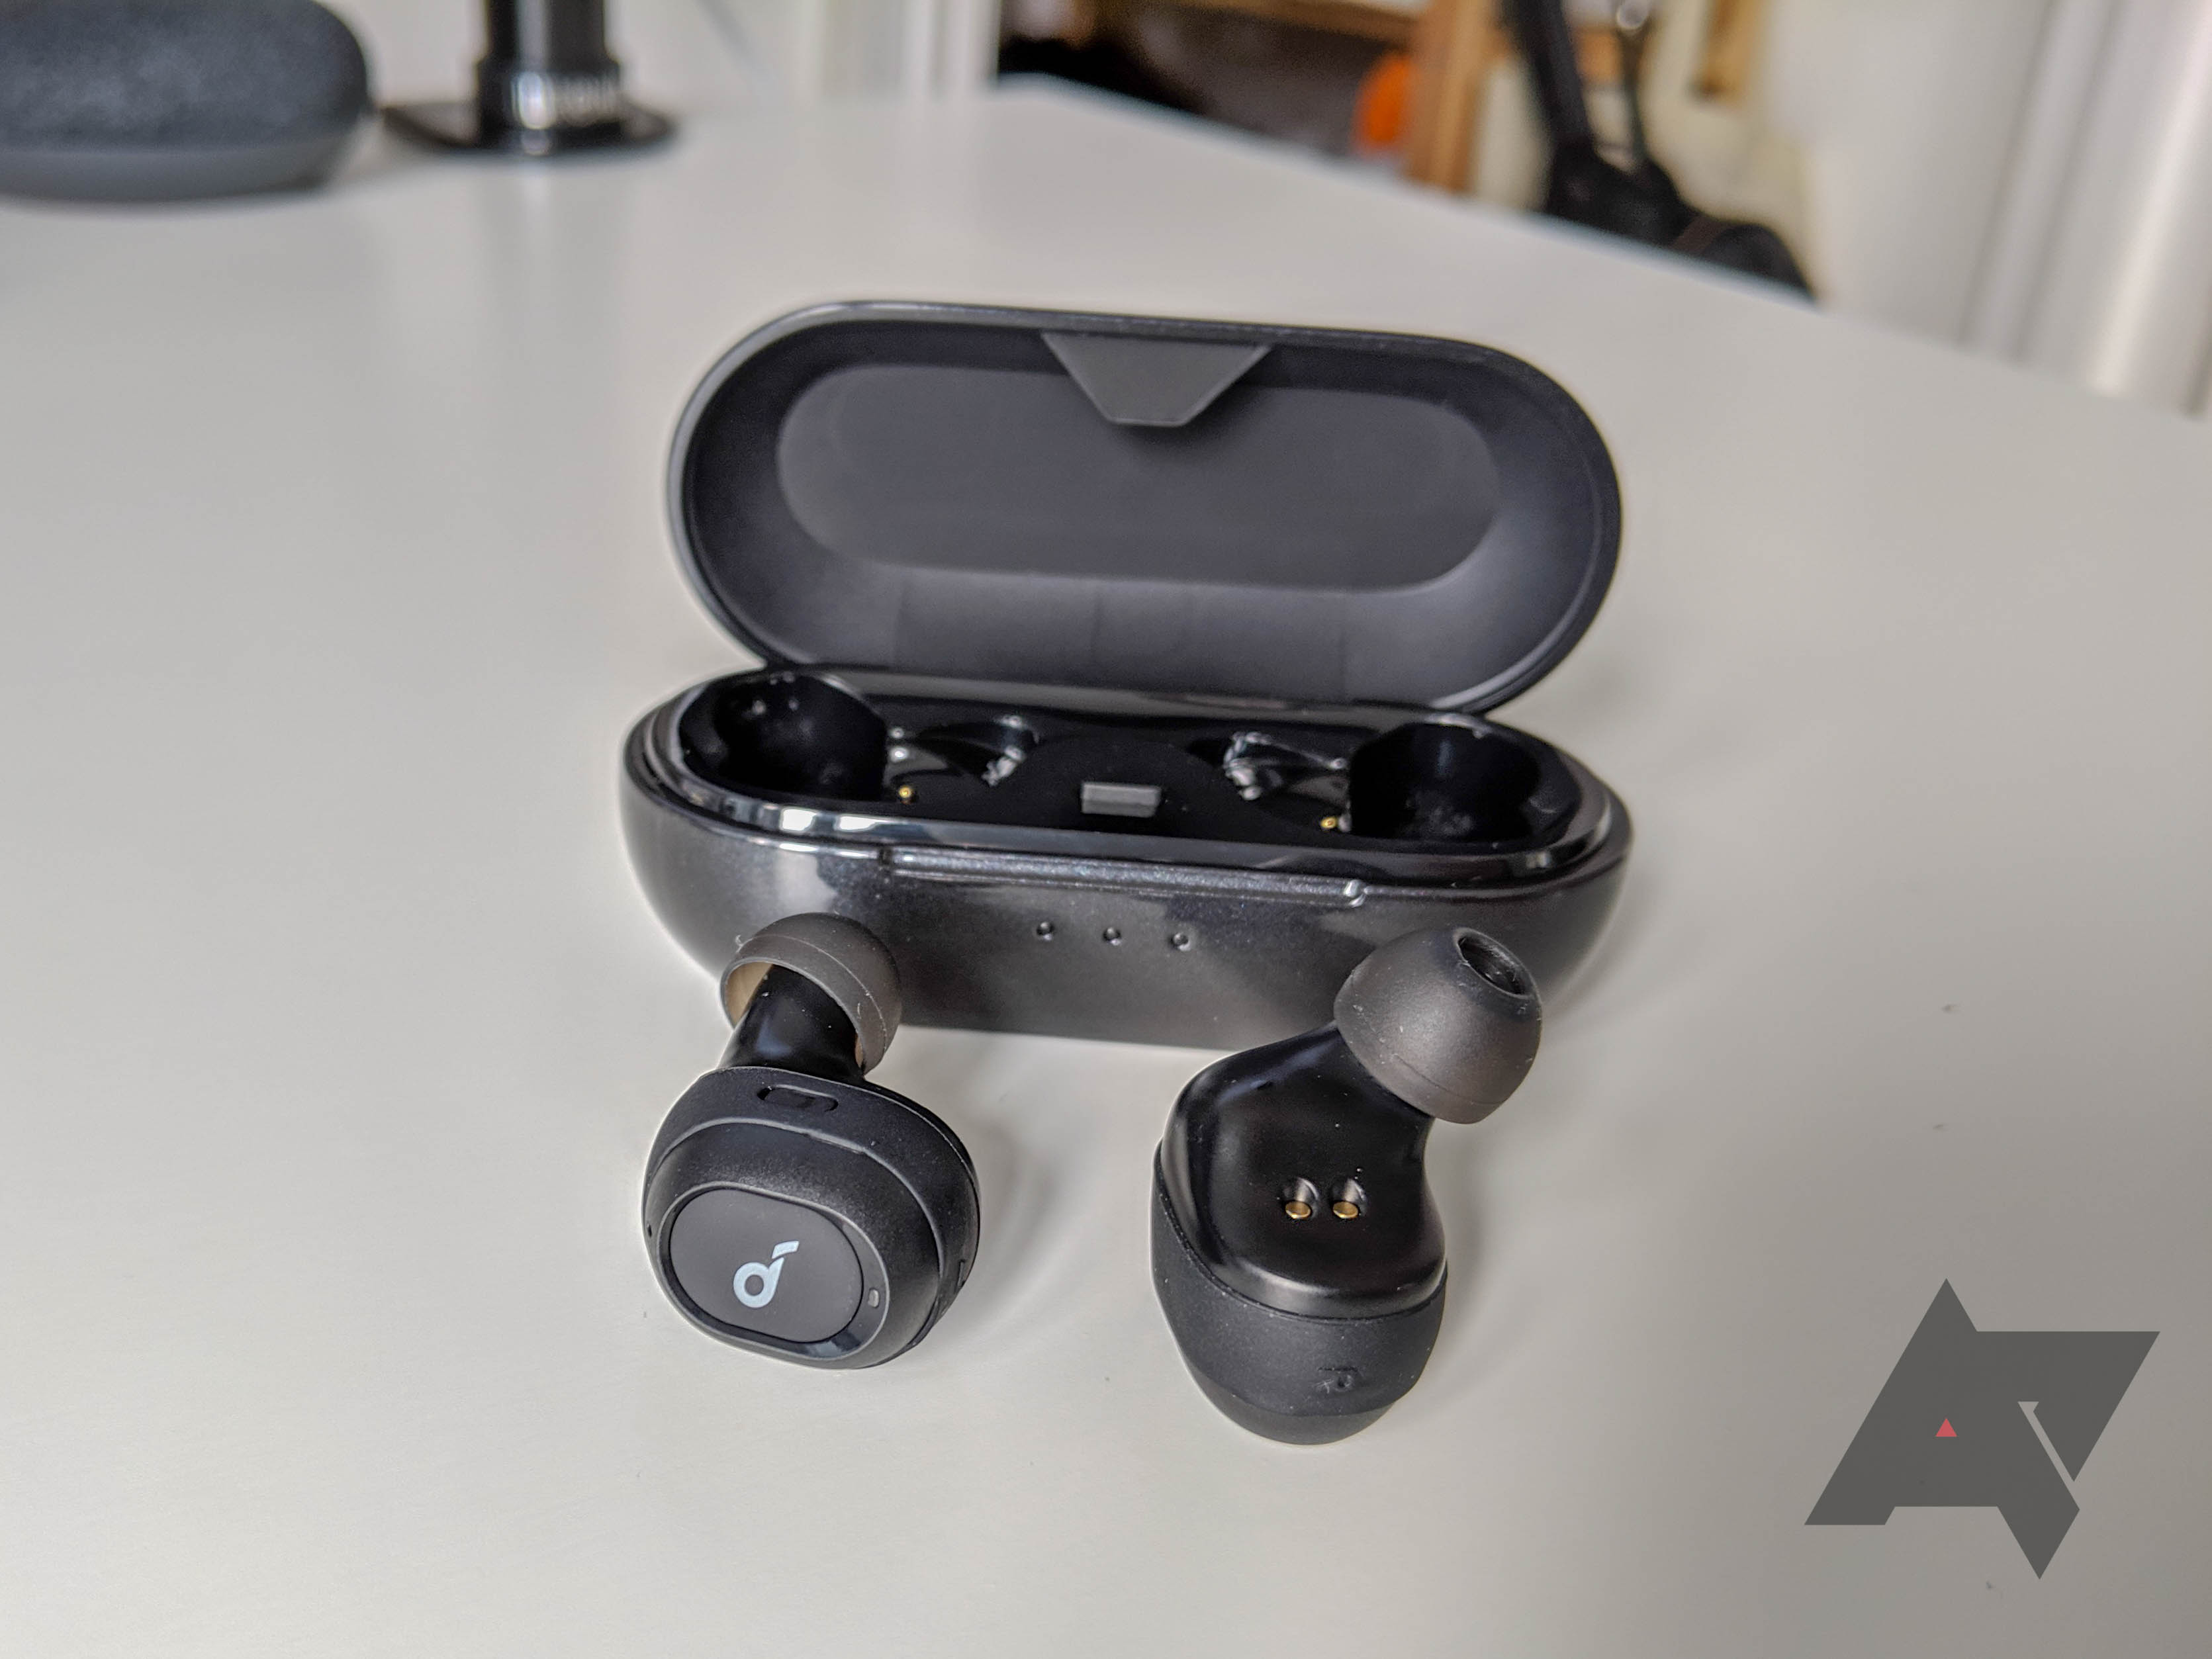 The Soundcore Liberty Neo finally bring decent audio to